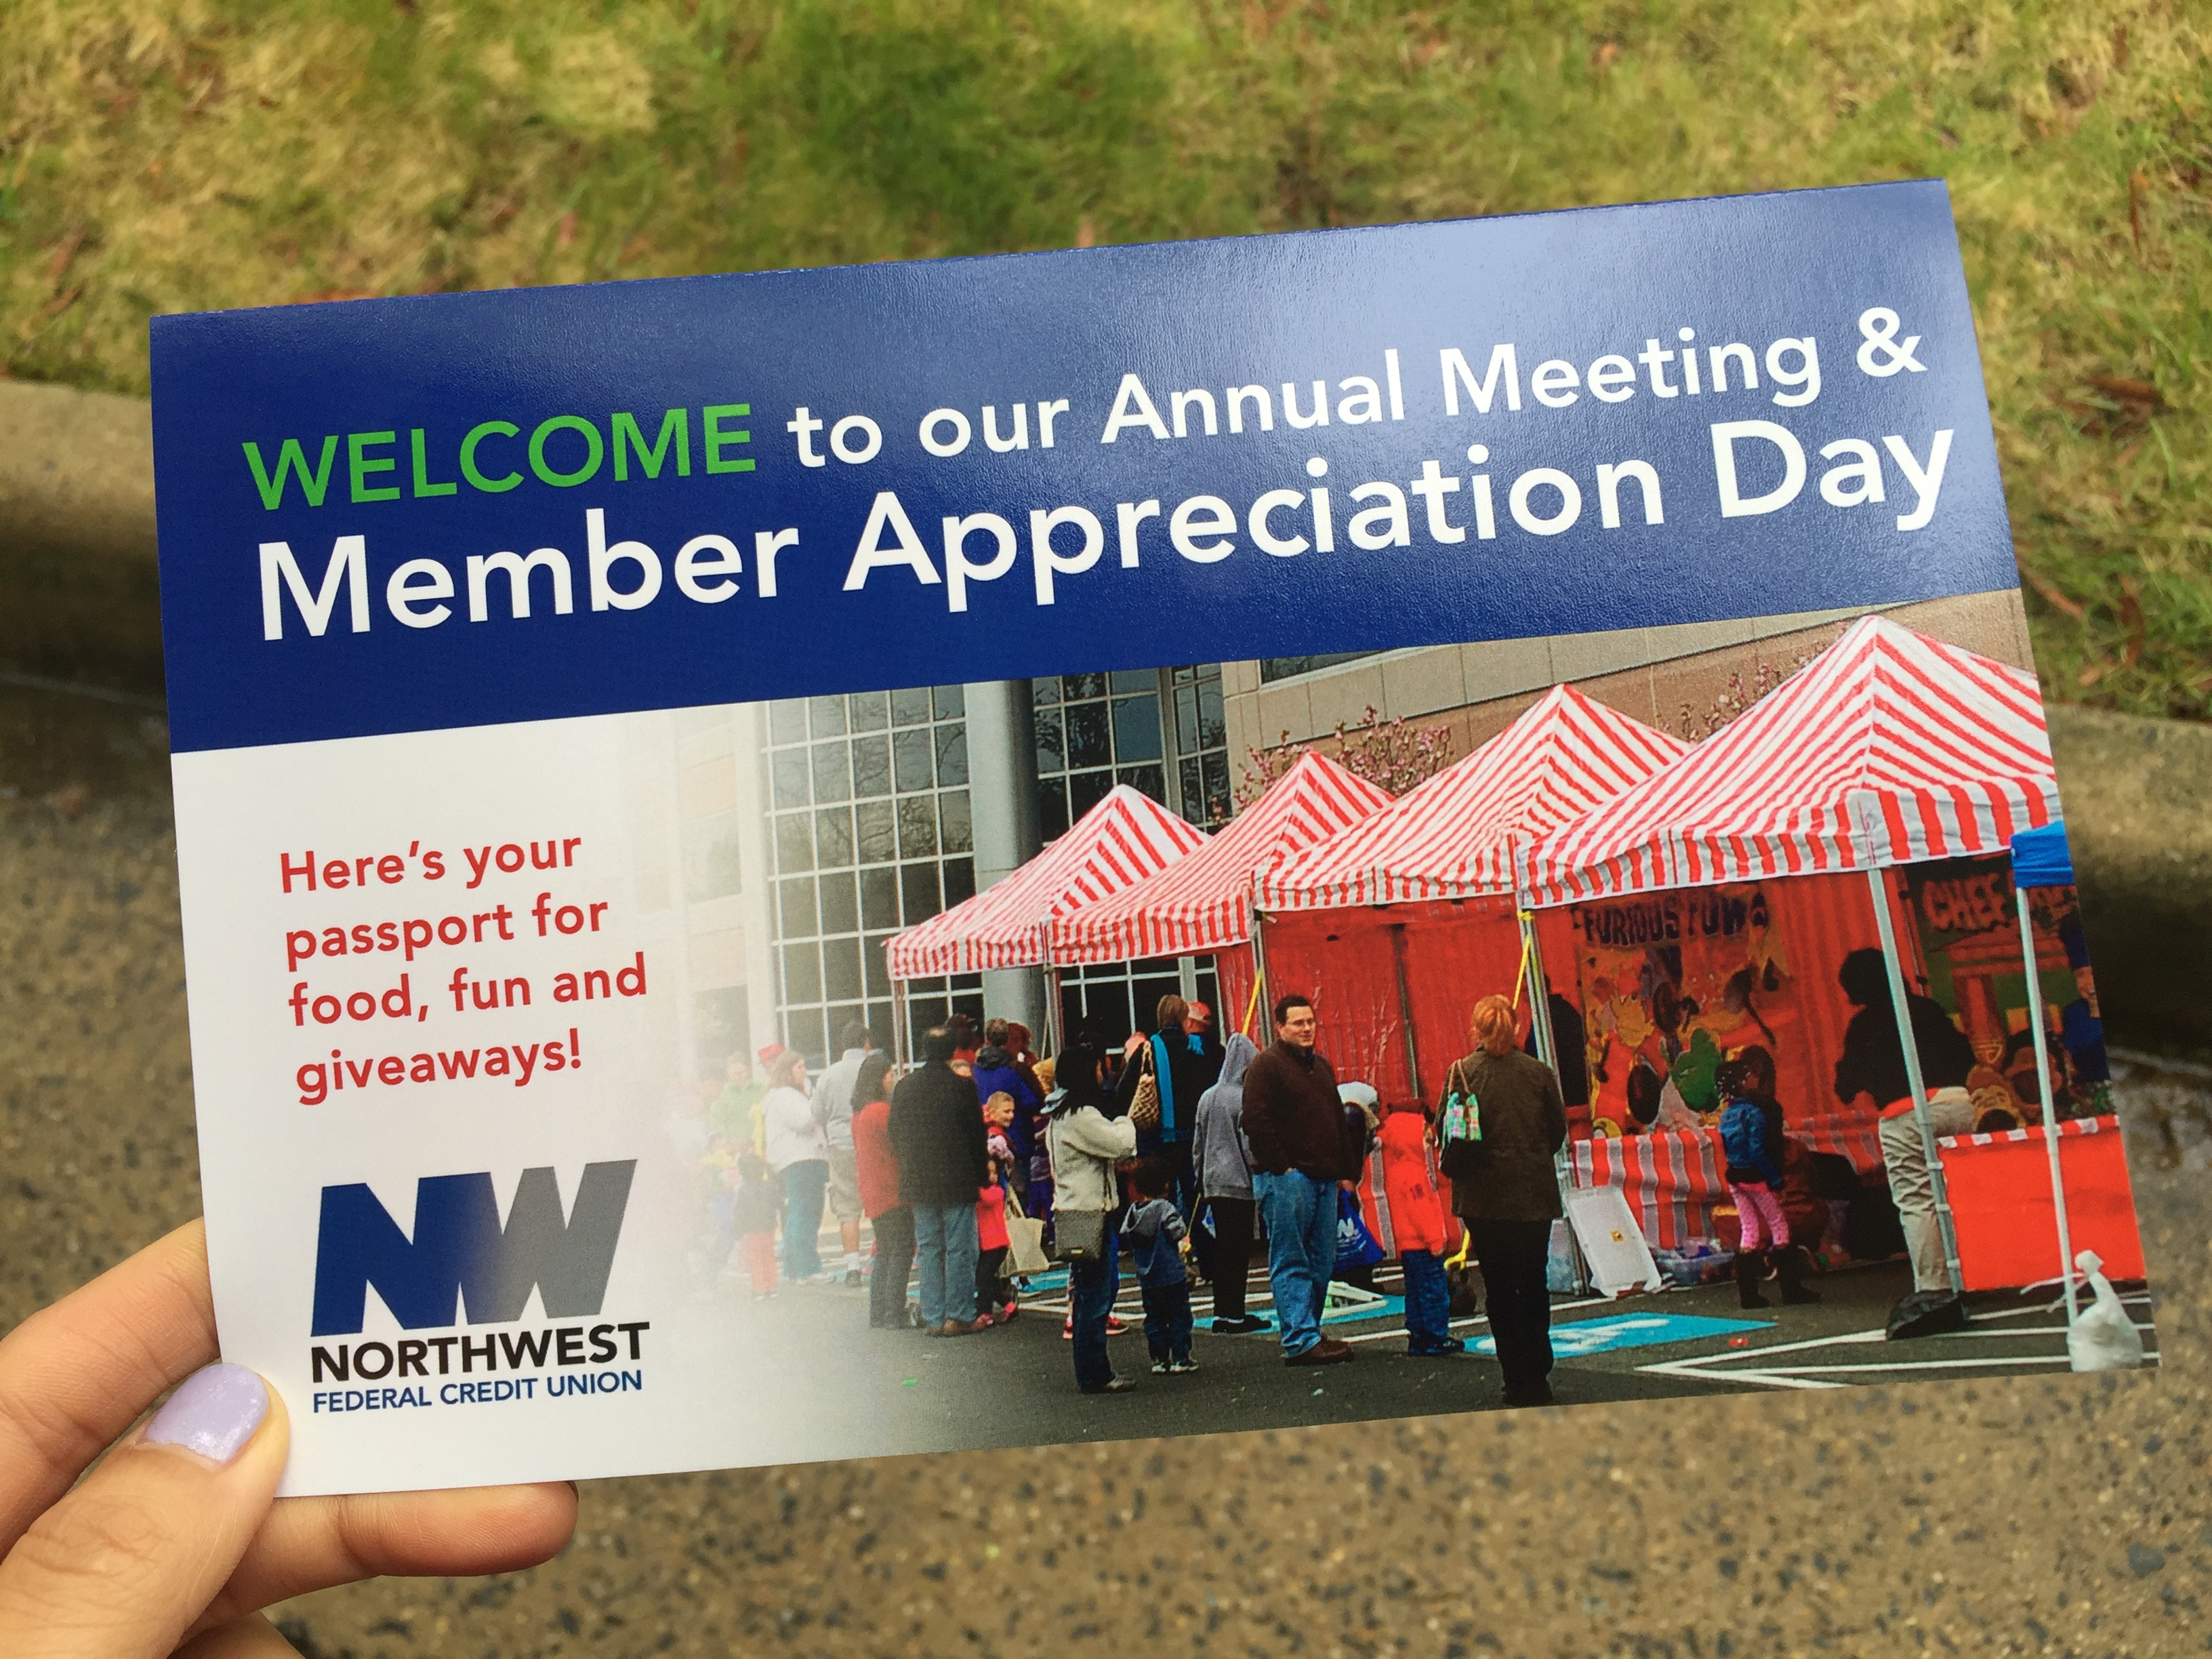 northwest federal credit union member appreciation day passport handout